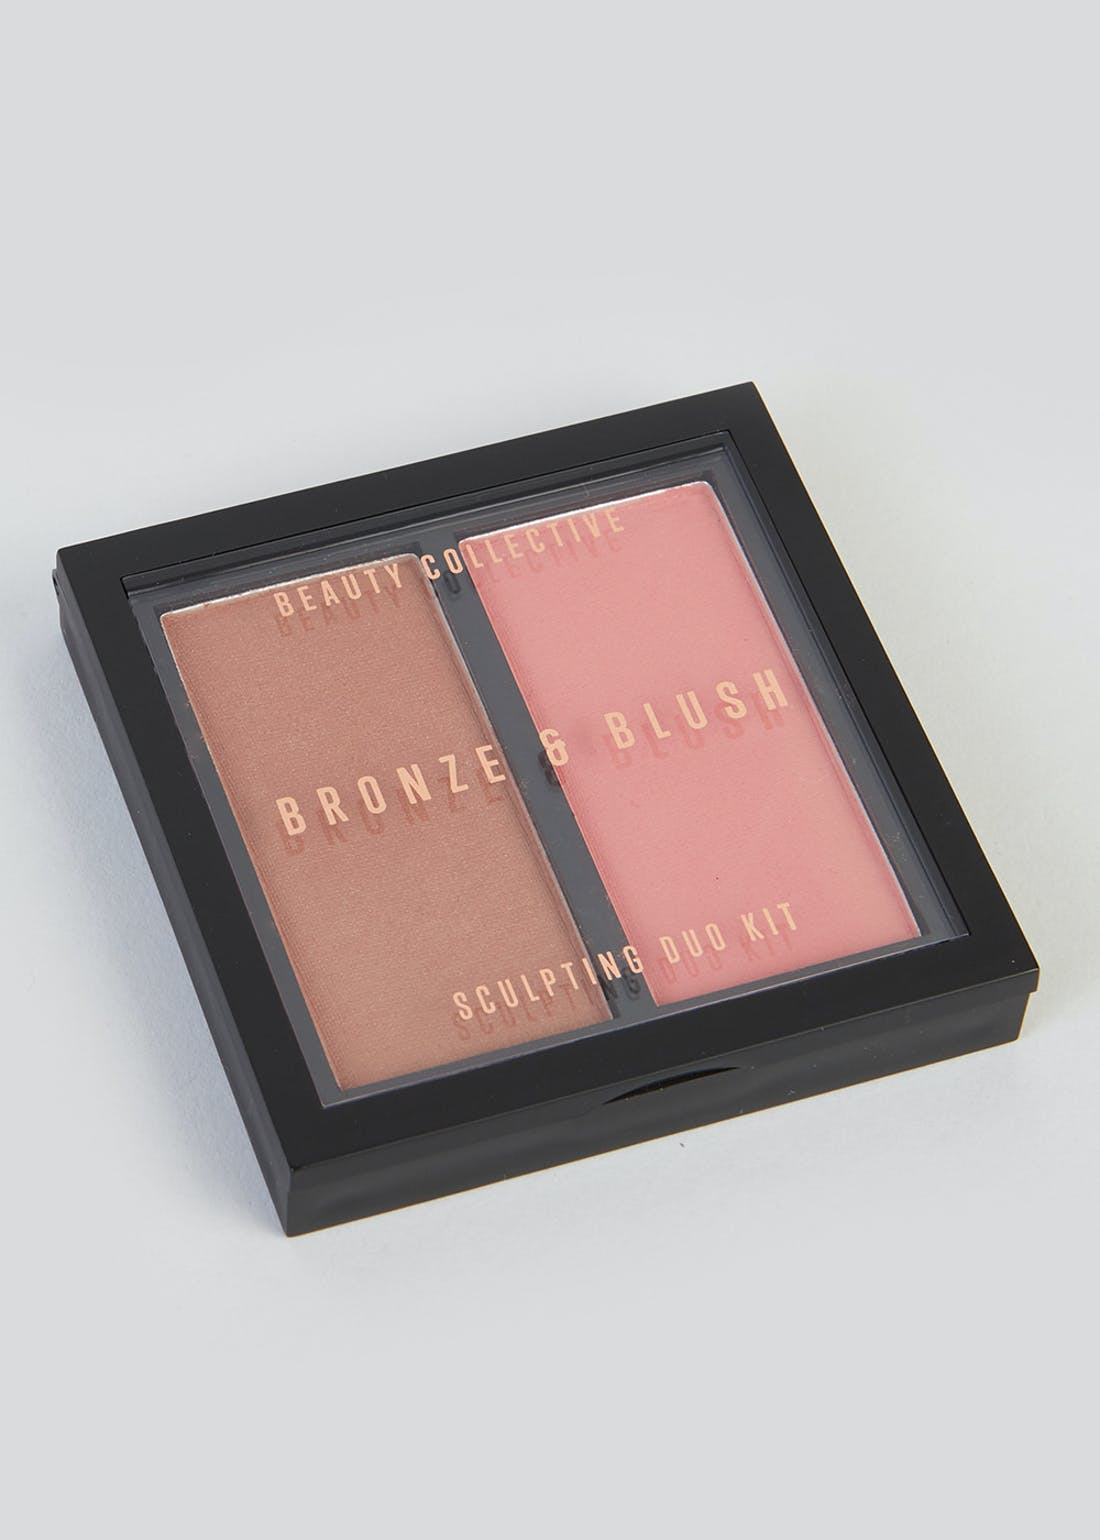 Beauty Collective Bronze & Blush Sculpting Duo Kit